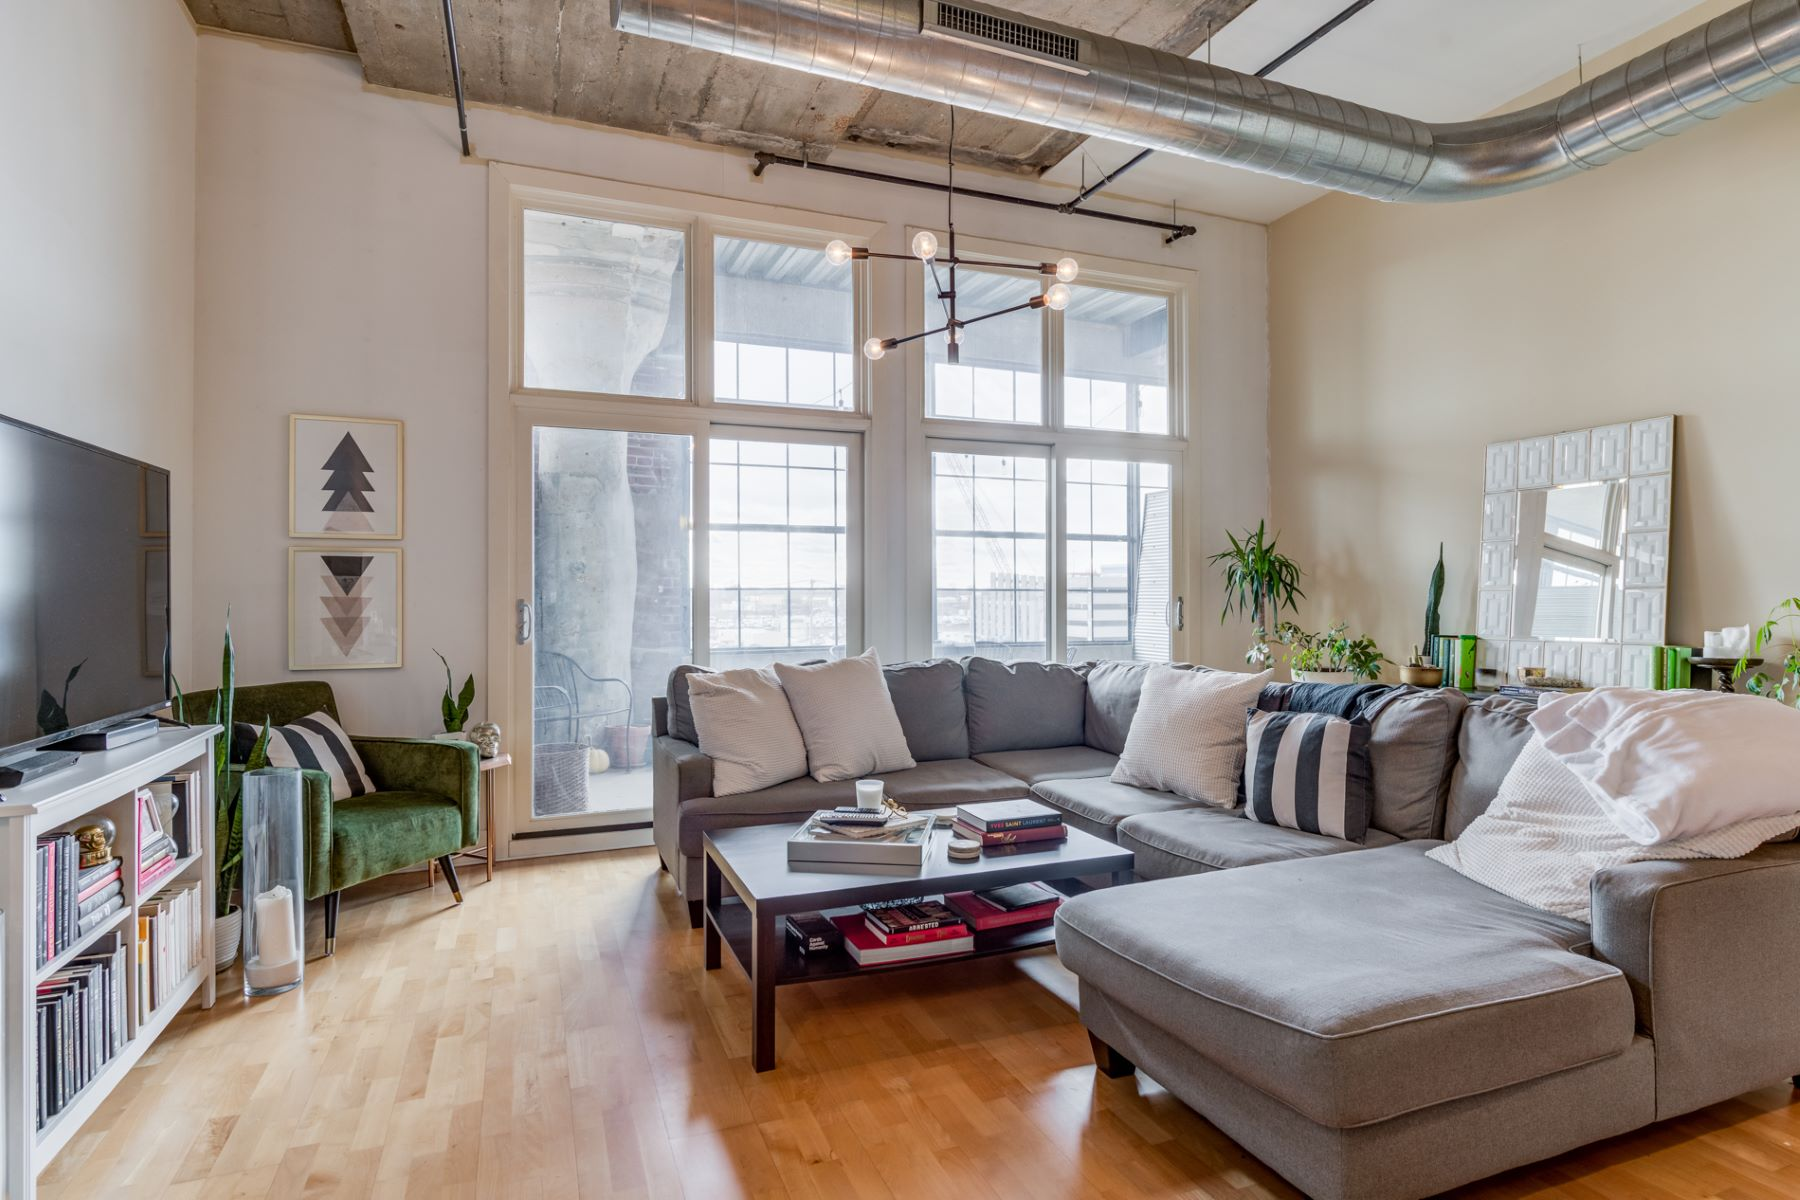 Additional photo for property listing at 4100 Forest Park Ave # 416 St. Louis, Missouri 63108 United States